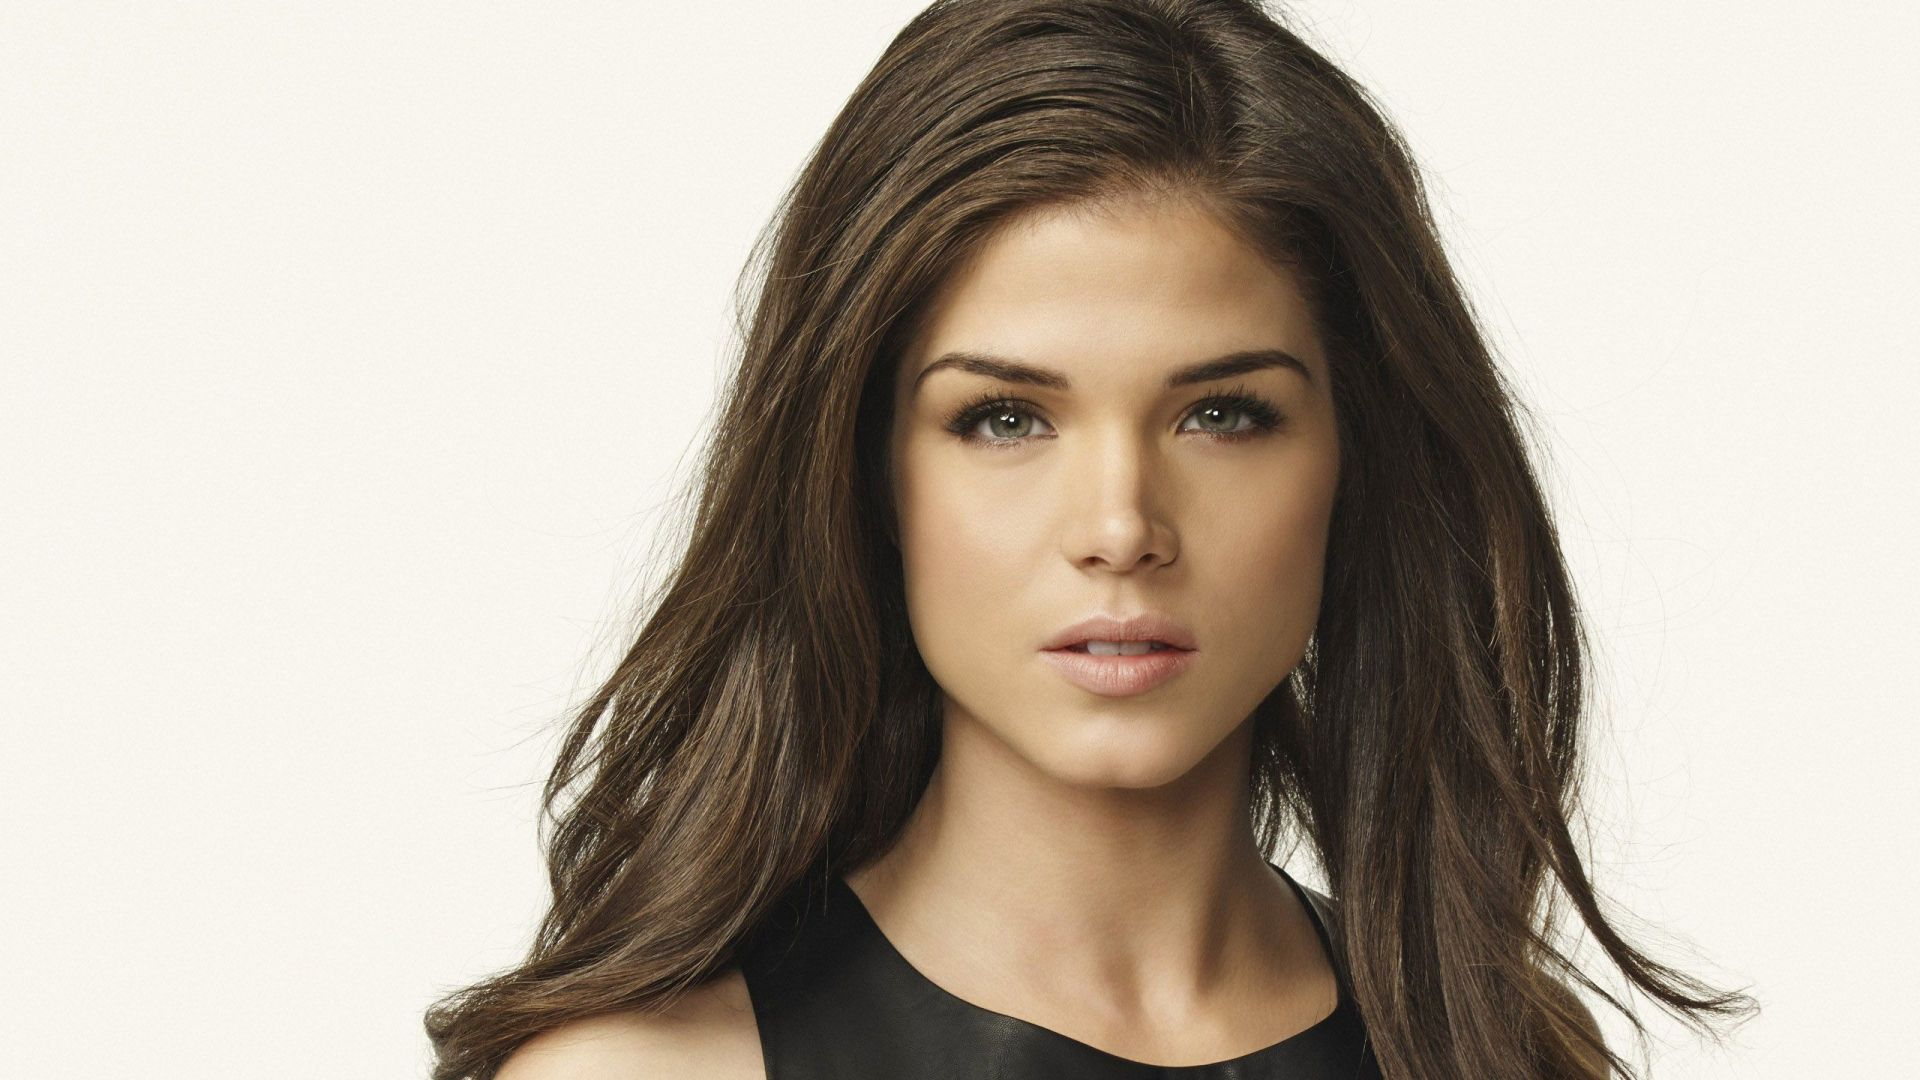 Wallpaper Marie Avgeropoulos, Canadian model, celebrity